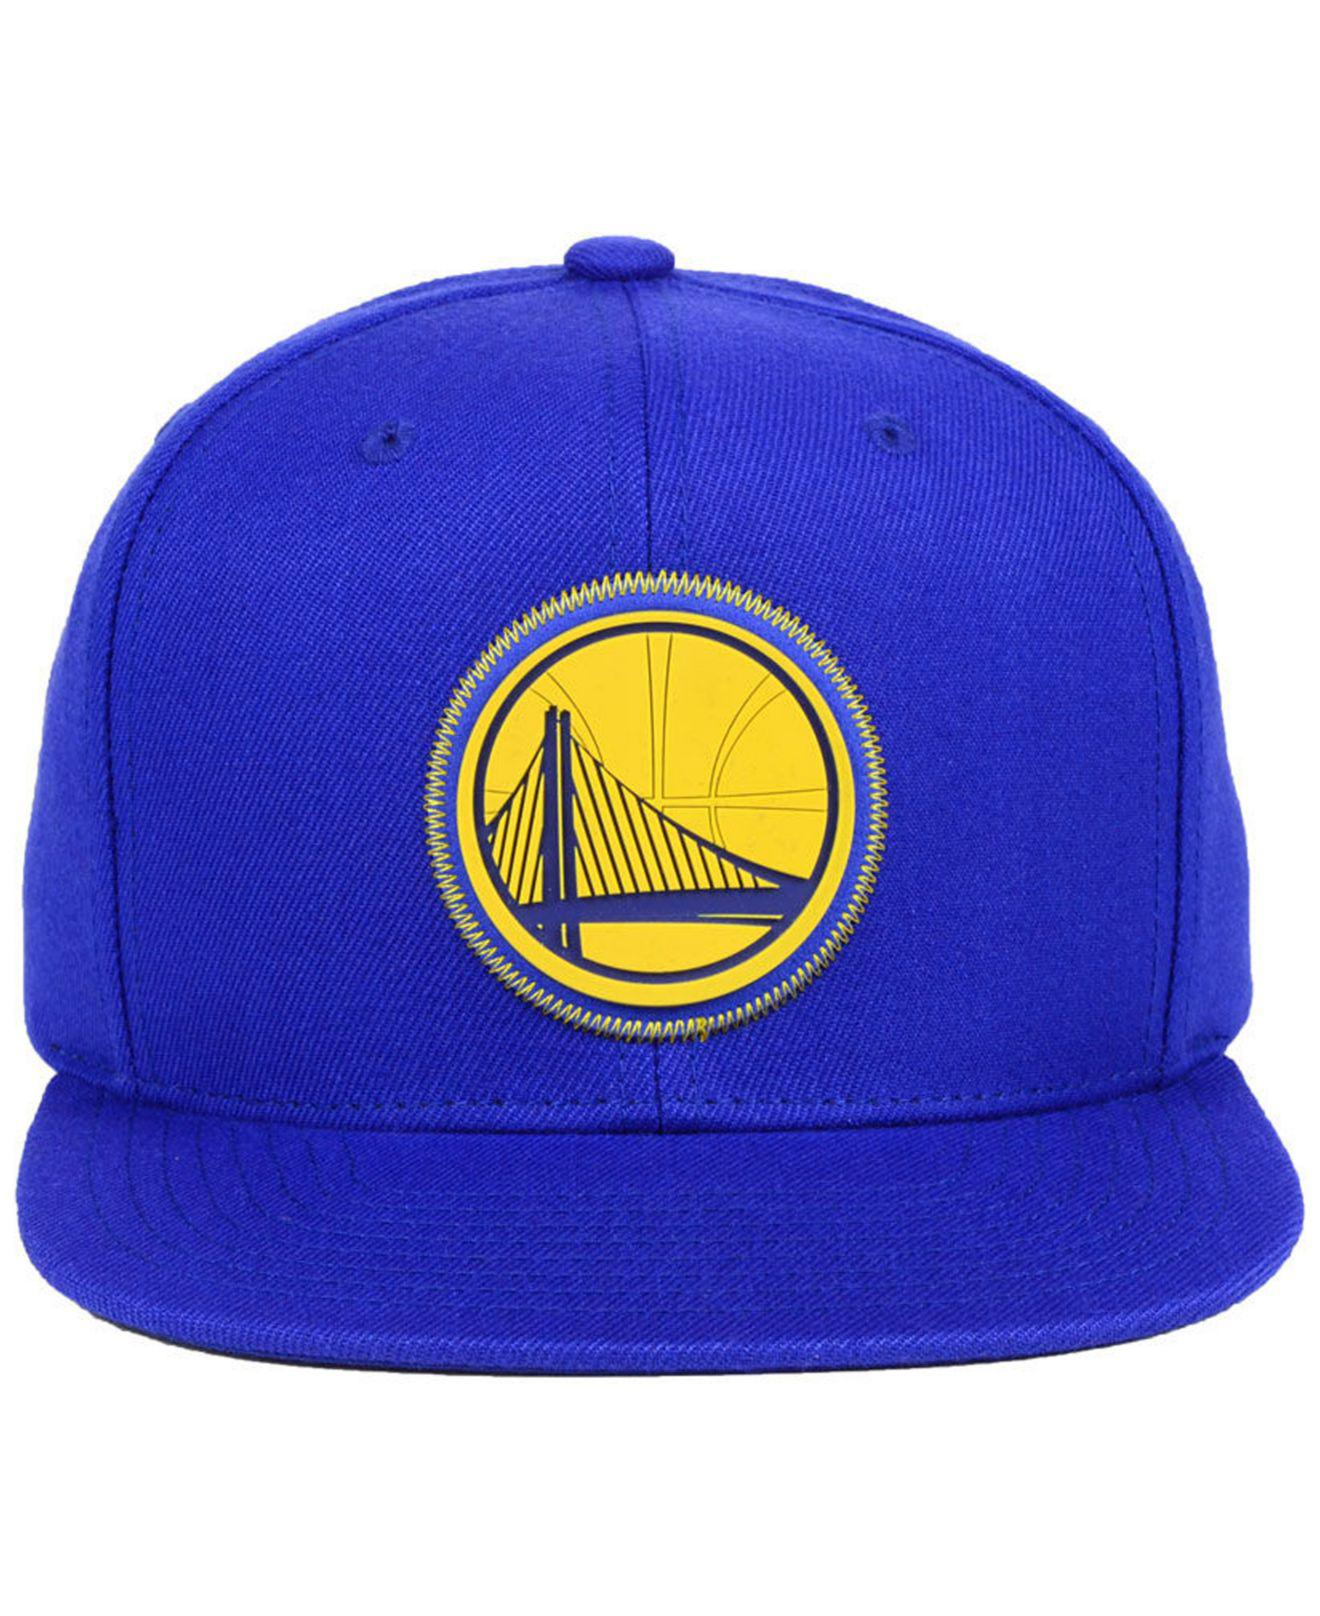 a135073a19abbe ... sale lyst mitchell ness golden state warriors zig zag snapback cap in  blue for men e7a7b